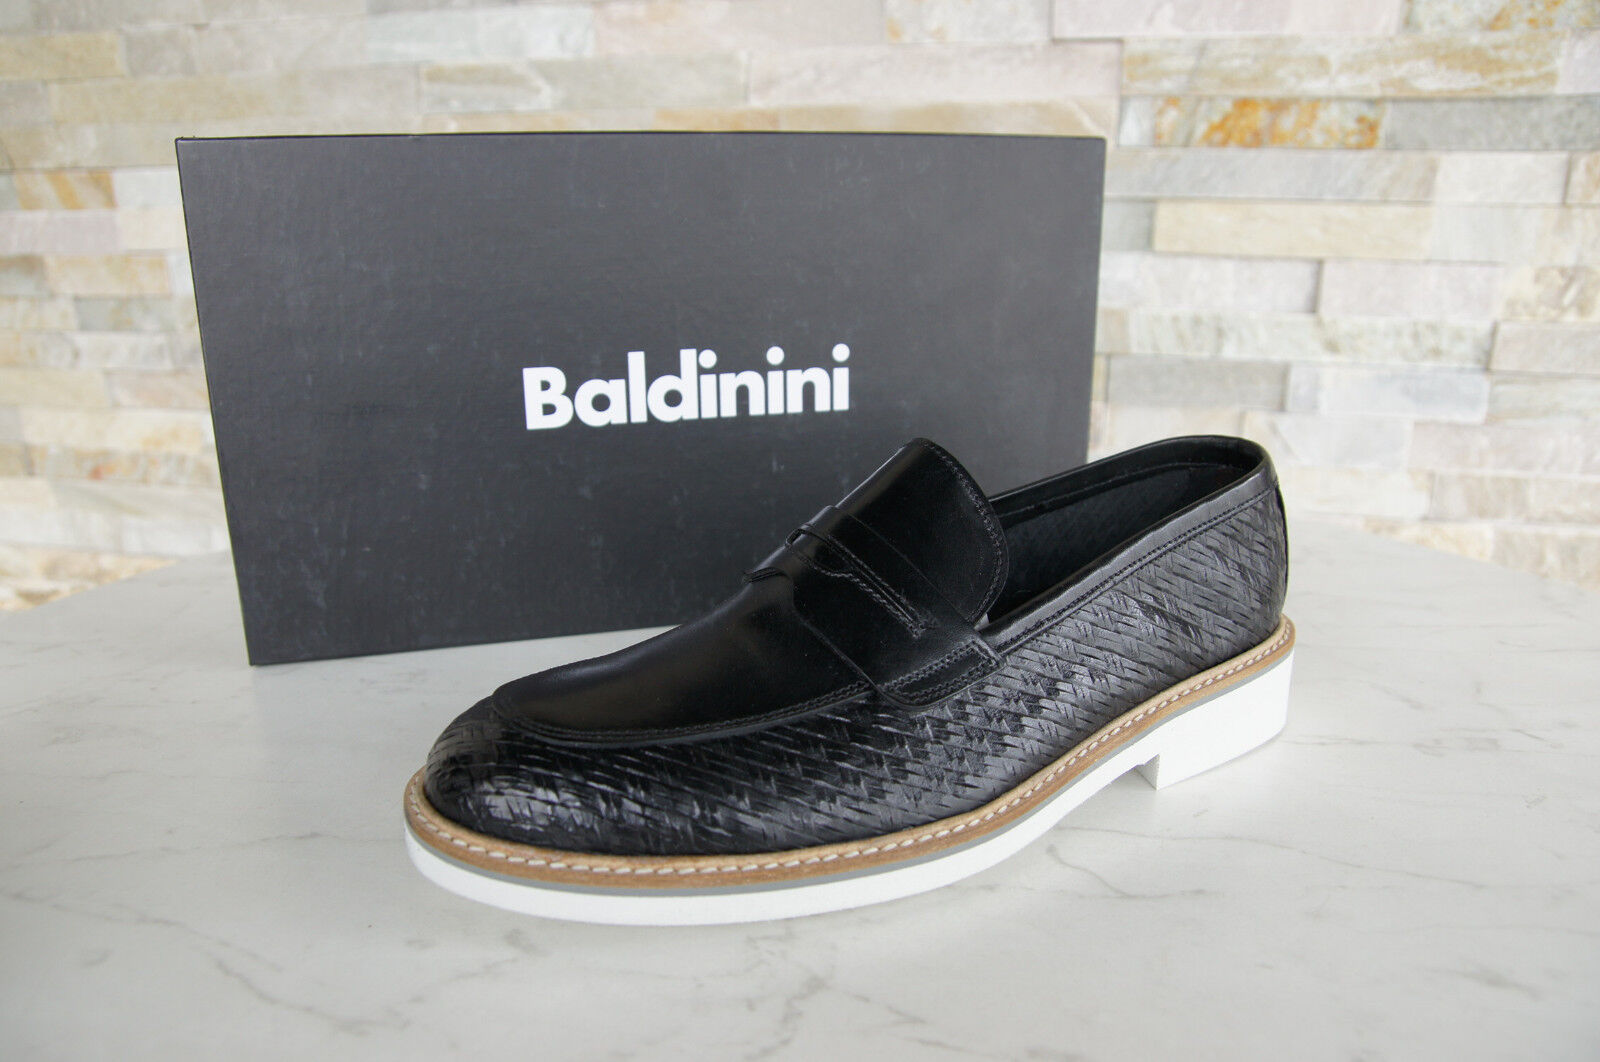 Baldinini Size 42 Slippers Loafers Moccasins shoes Black New Formerly Rrp